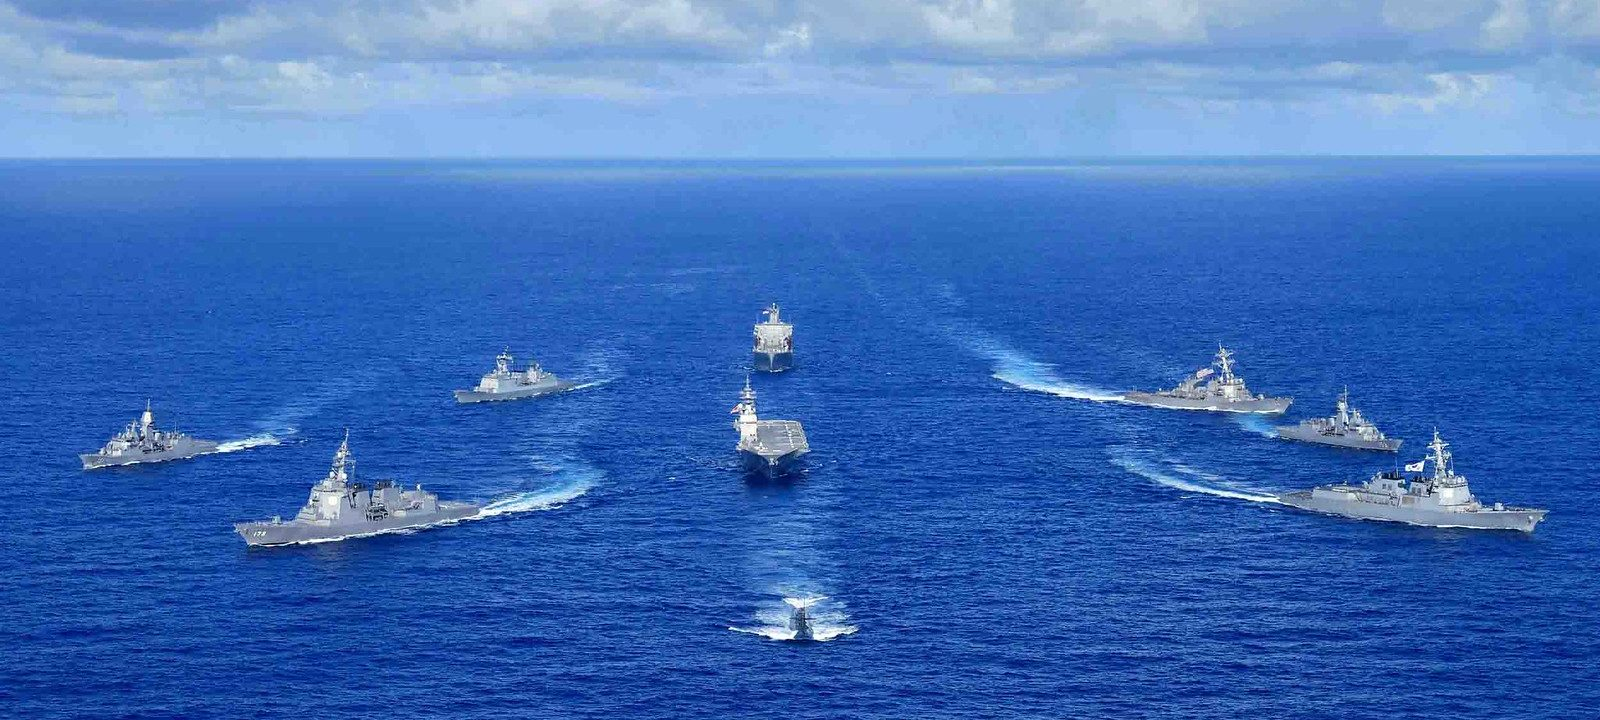 Royal Australian Navy, Republic of Korea Navy, Japan Maritime Self-Defense Force, and United States Navy warships sail in formation during the Pacific Vanguard 2020 exercise.